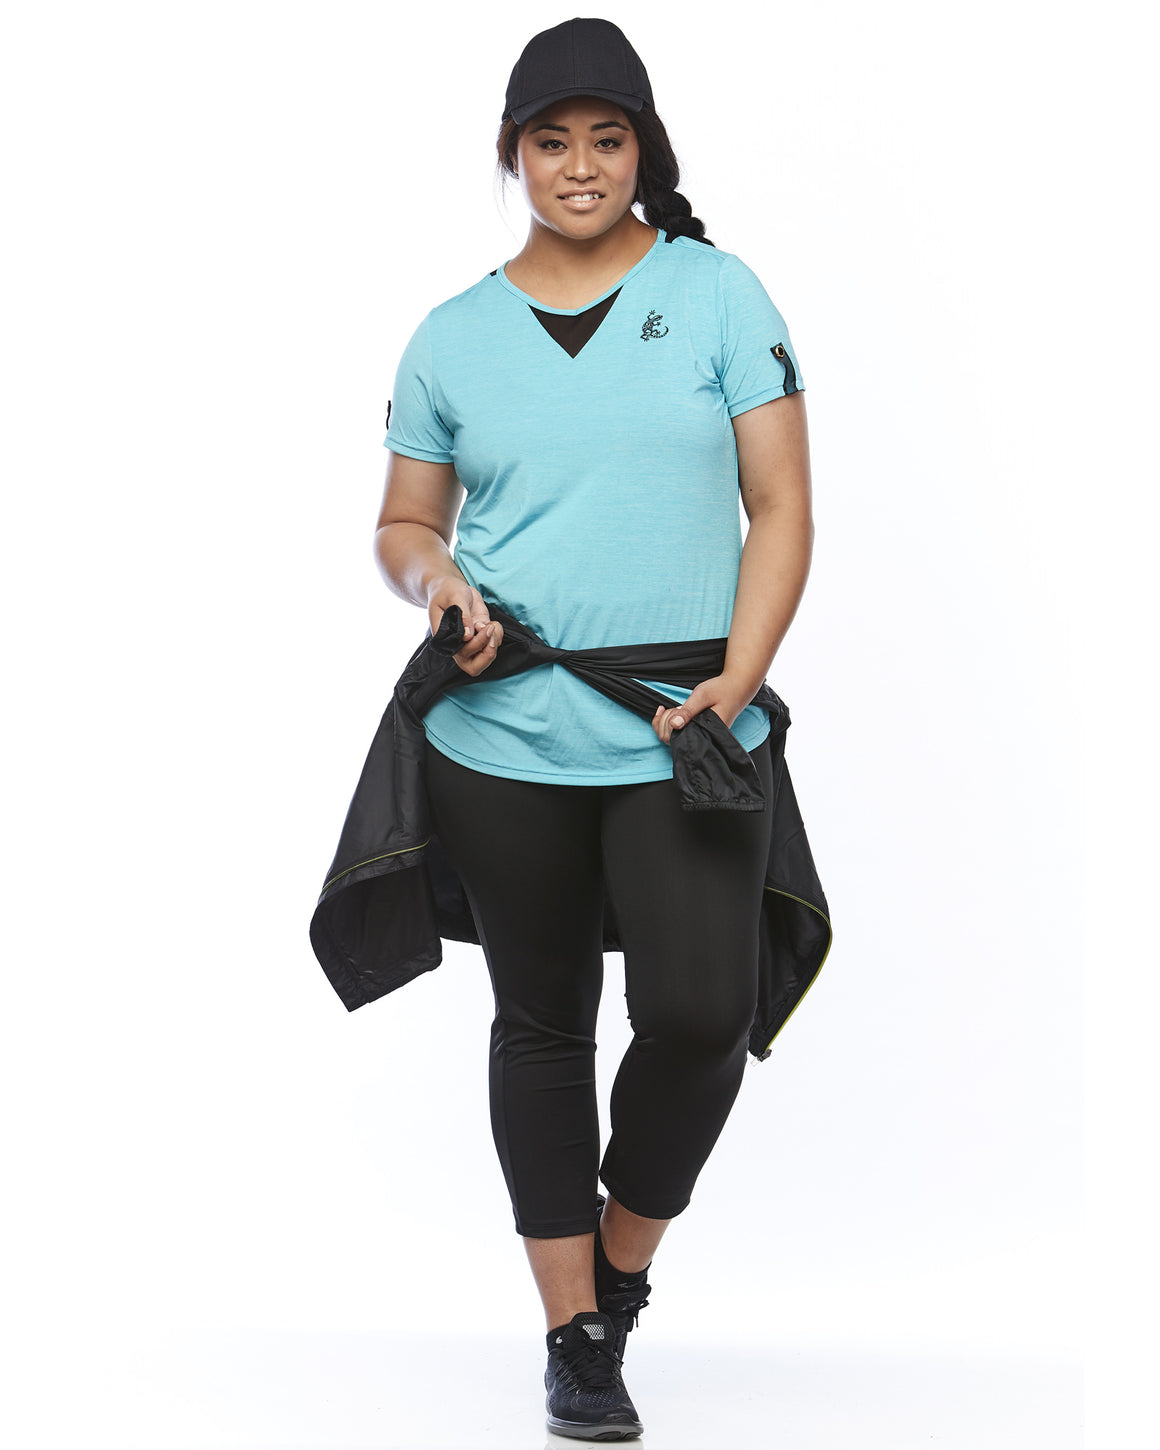 Getting funky with Lowanna Australia Zest Shorts Sleeve Shirt for Sports. Sizes 14-26.